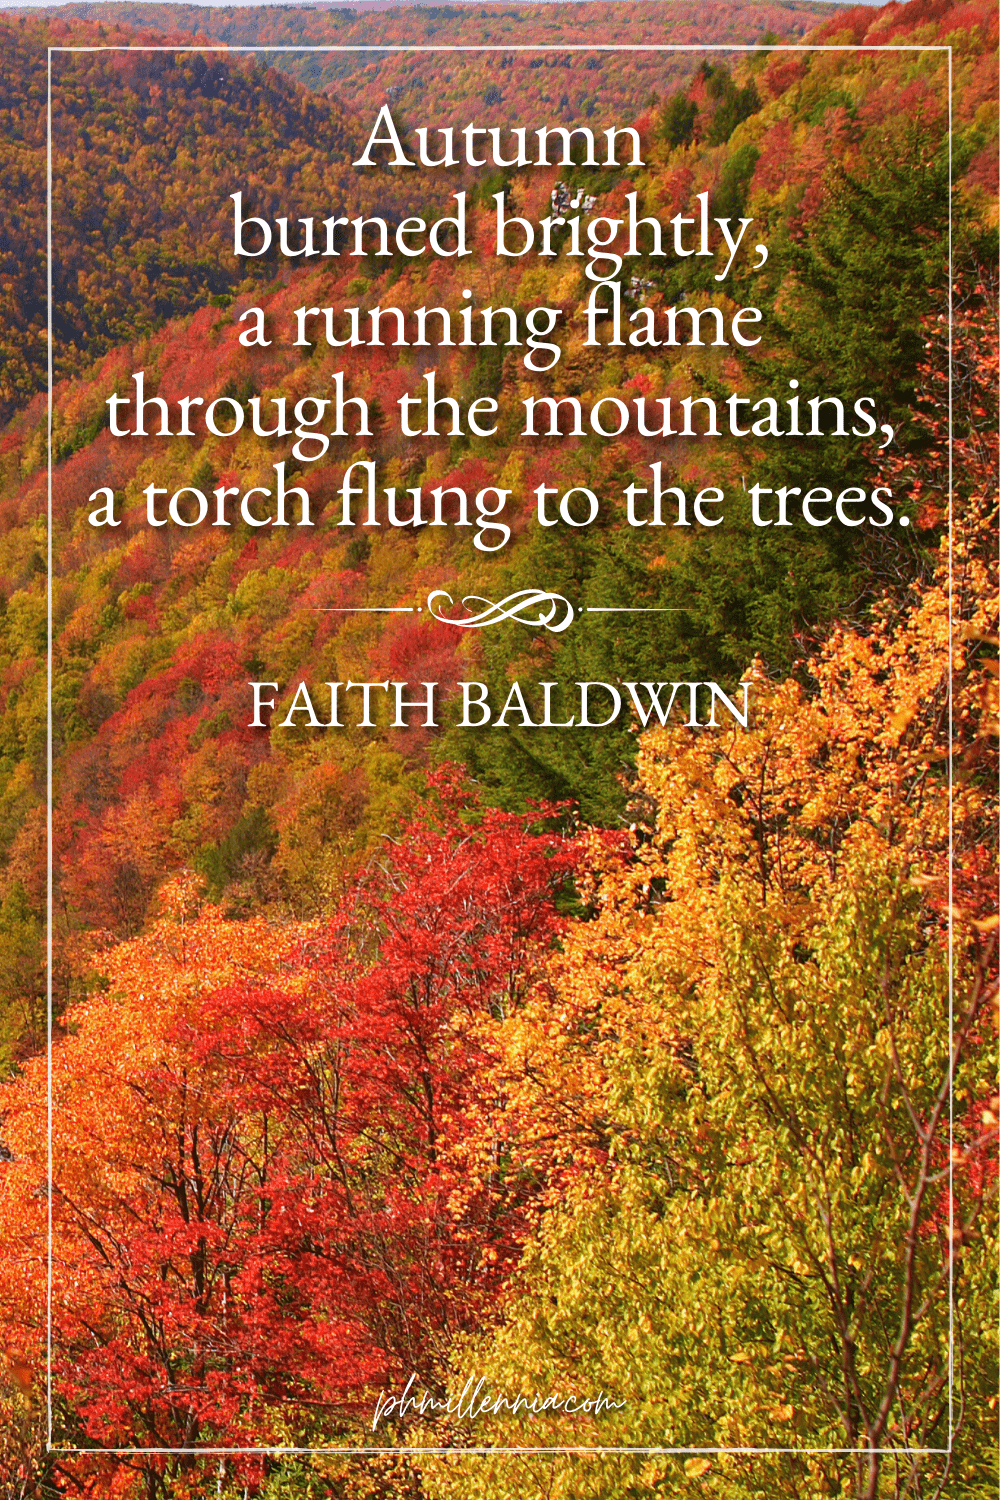 """A graphic featuring an autumn quote/fall saying over an image of an aerial view of mountainside forests and trees in autumn/fall colors, designed as a Pinterest Pin for the article """"199 Autumn Quotes to Fall Deeply and Spectacularly in Love With"""" on phmillennia.com"""